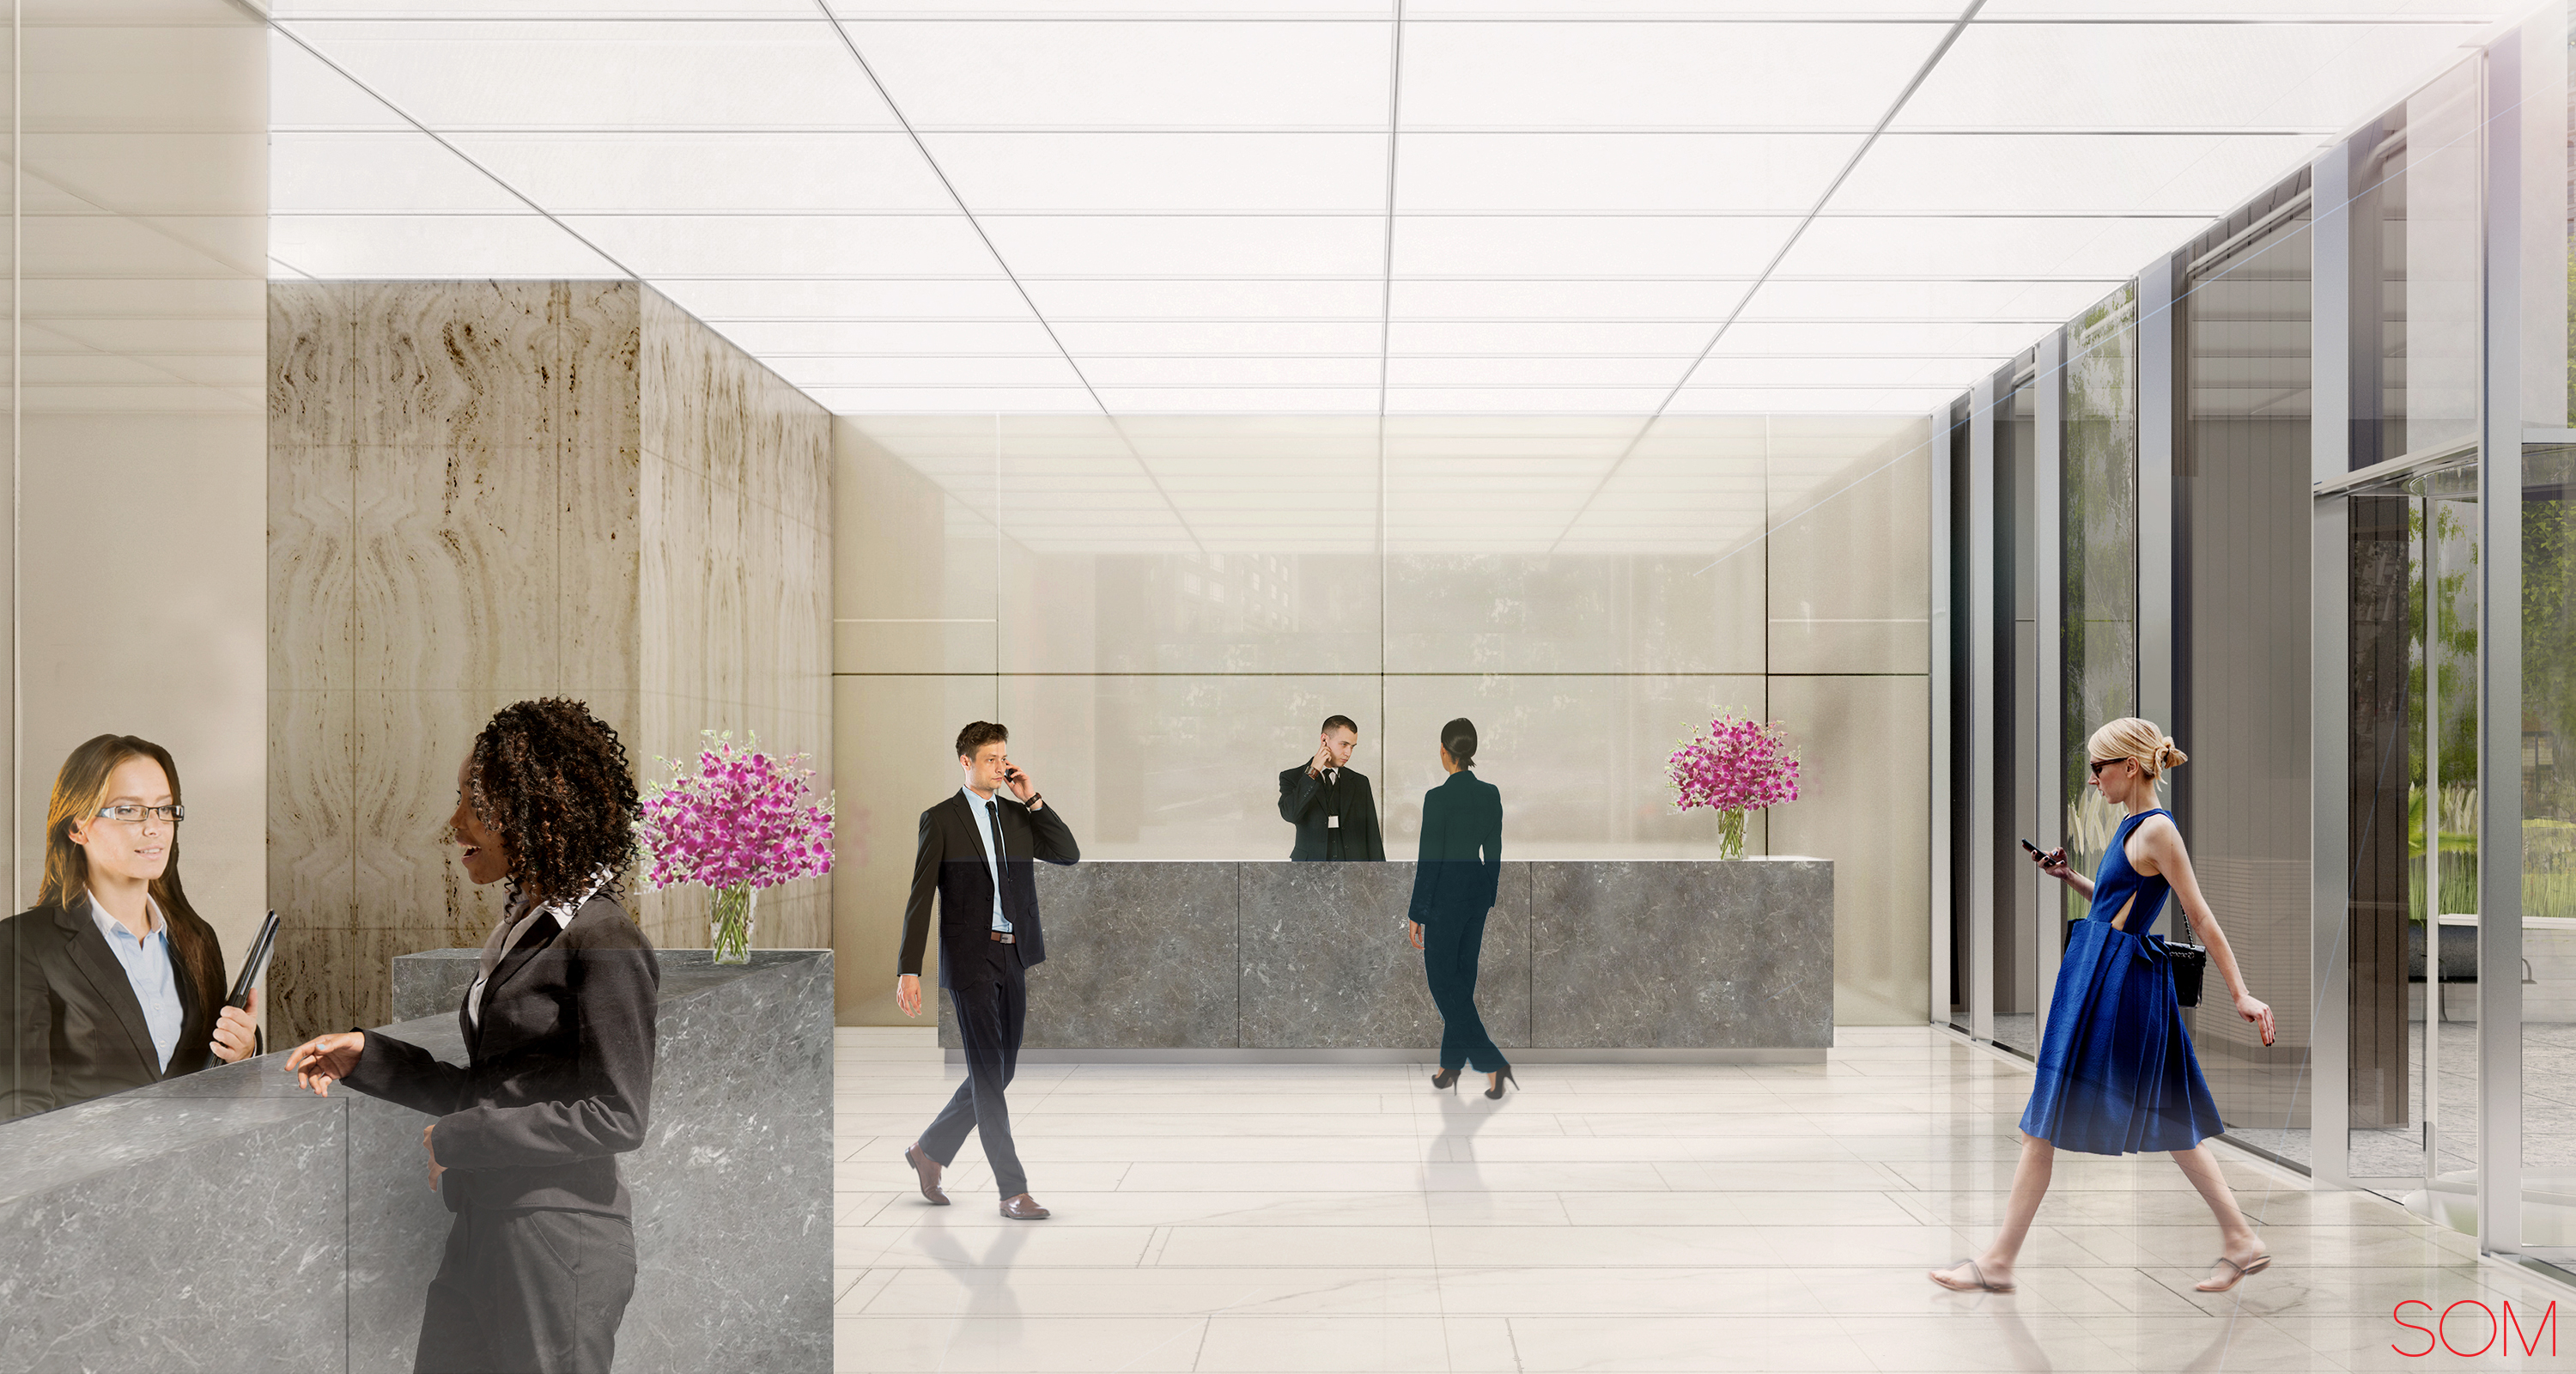 Rendering of new lobby at 41 Madison Avenue. Credit: Rudin/SOM.